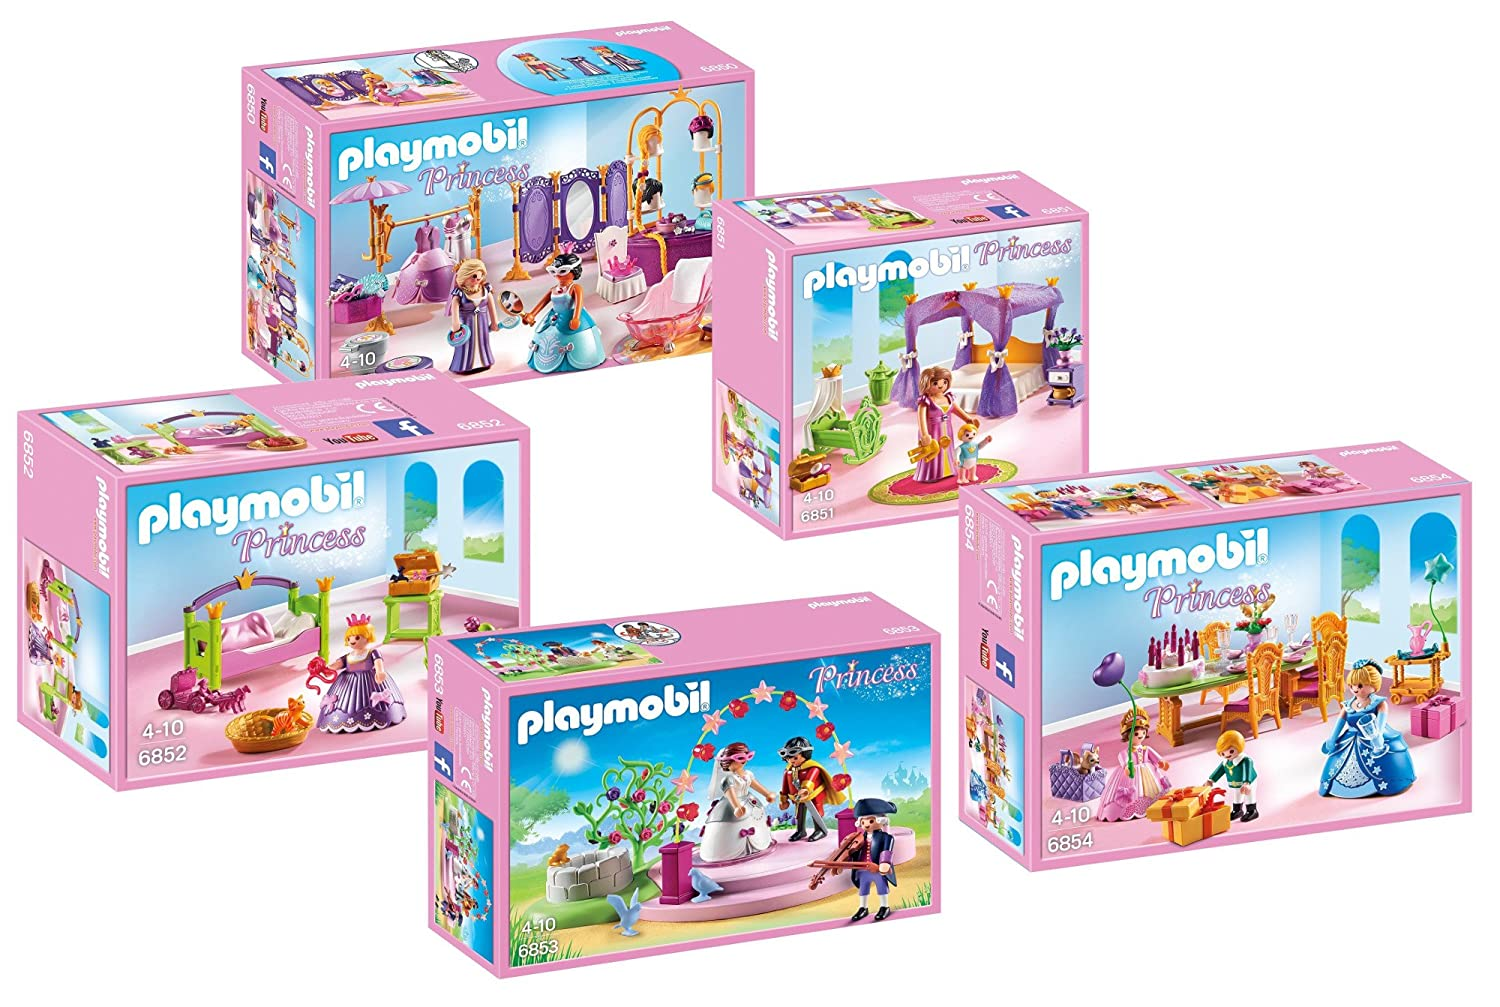 Accessoires chateau princesse playmobil for Meuble playmobil